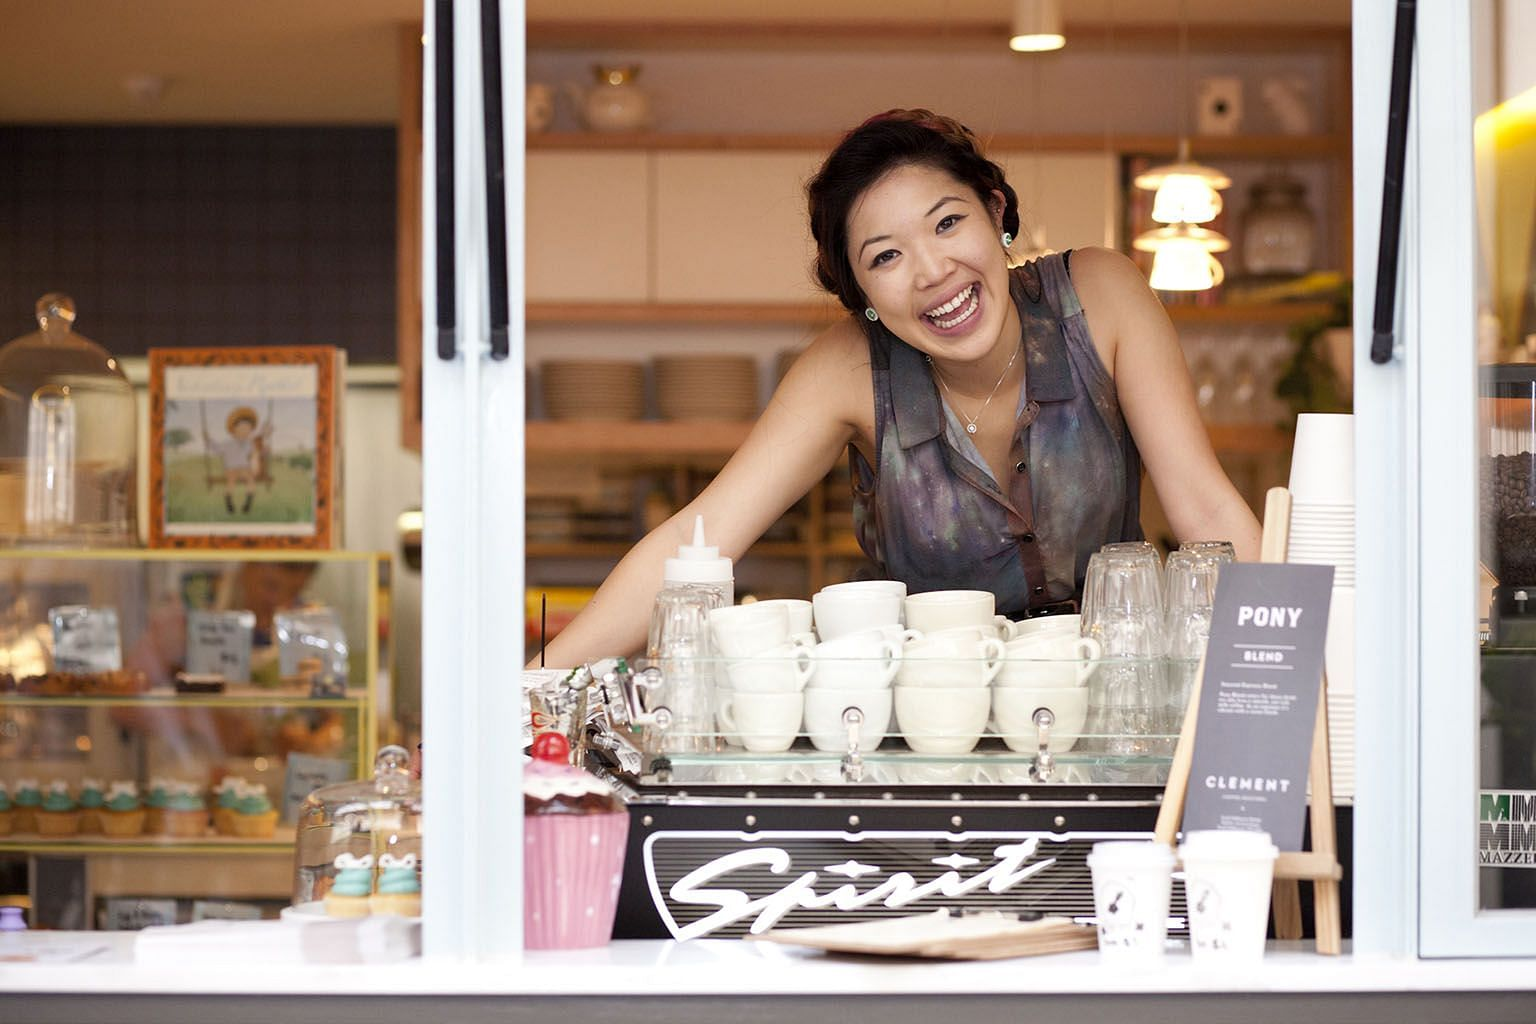 Ms Wong, who runs a cafe with an Alice In Wonderland theme in a small arcade in the centre of Melbourne, says the recycling scheme has made everything a bit cleaner and helped her run the cafe better.